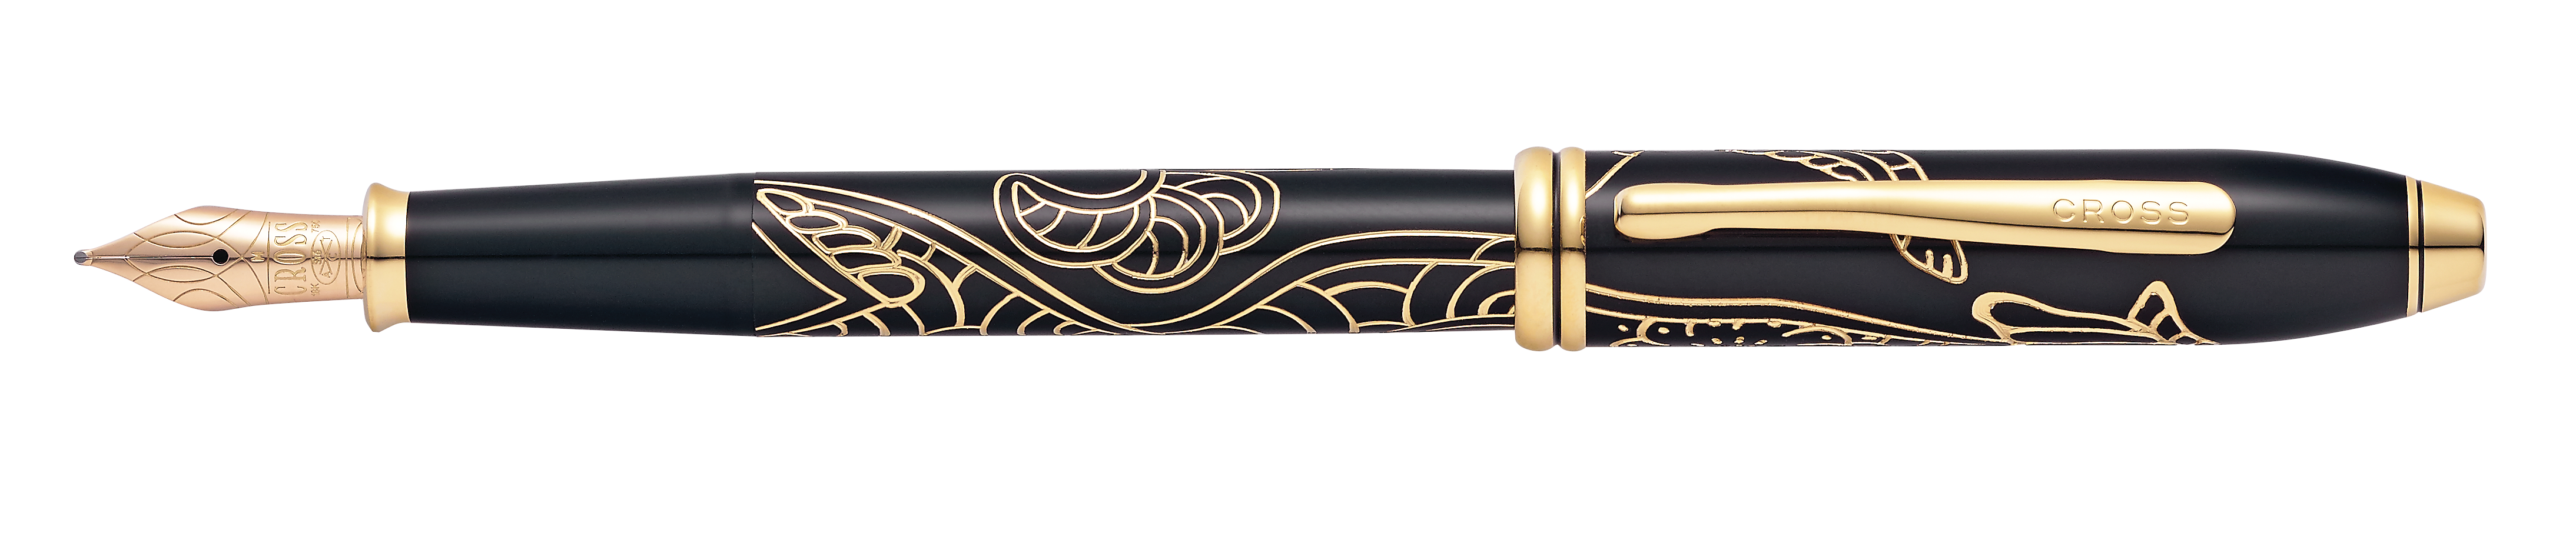 Cross 2018 Year of the Dog Special-Edition Fountain Pen